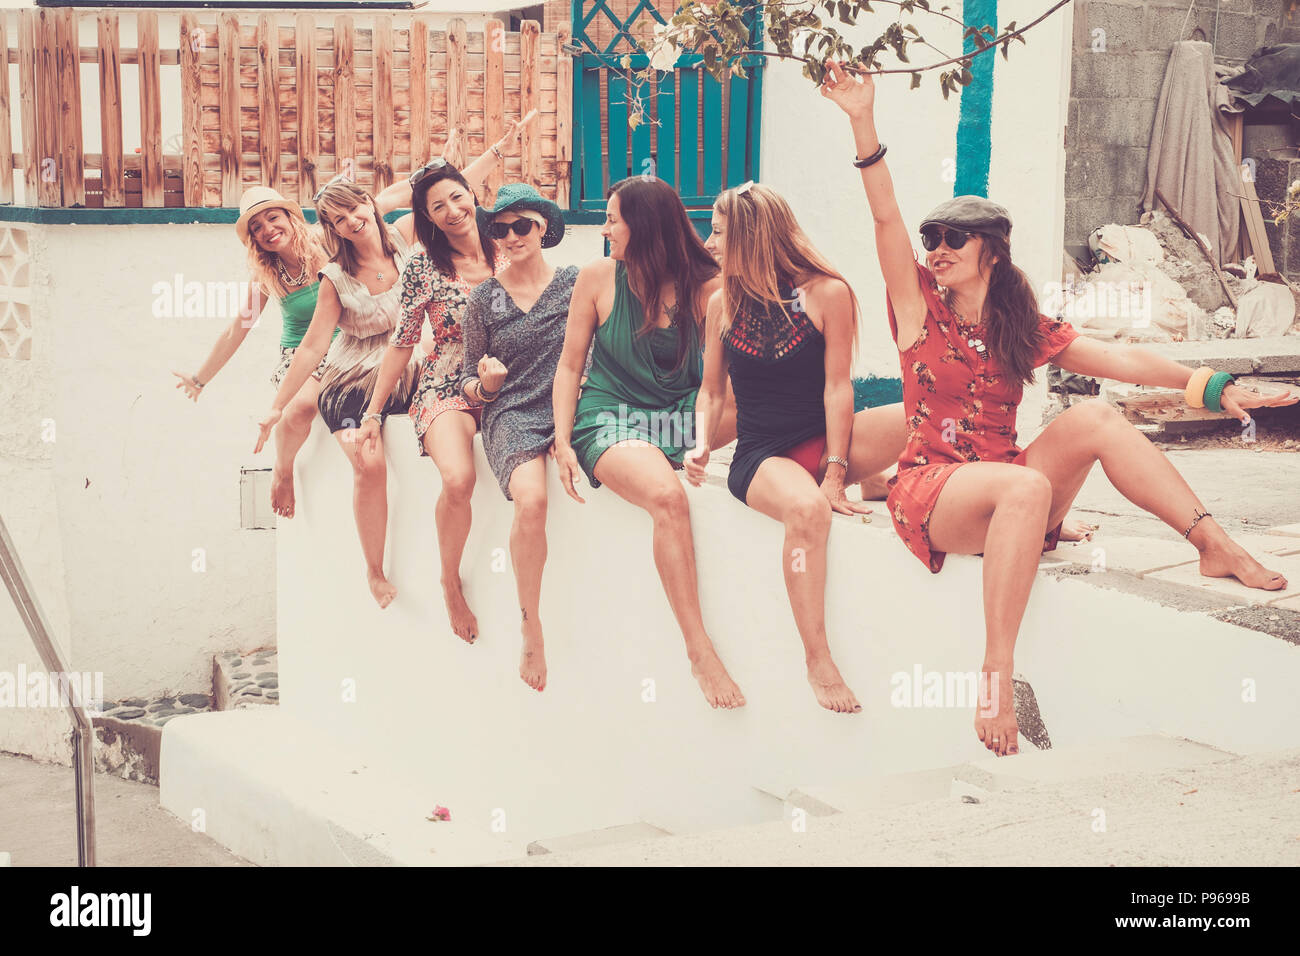 group of seven young smile beautiful woman crazy in vacation and friendship or relationship stay together sit down and go crazy with laugh. summer col - Stock Image